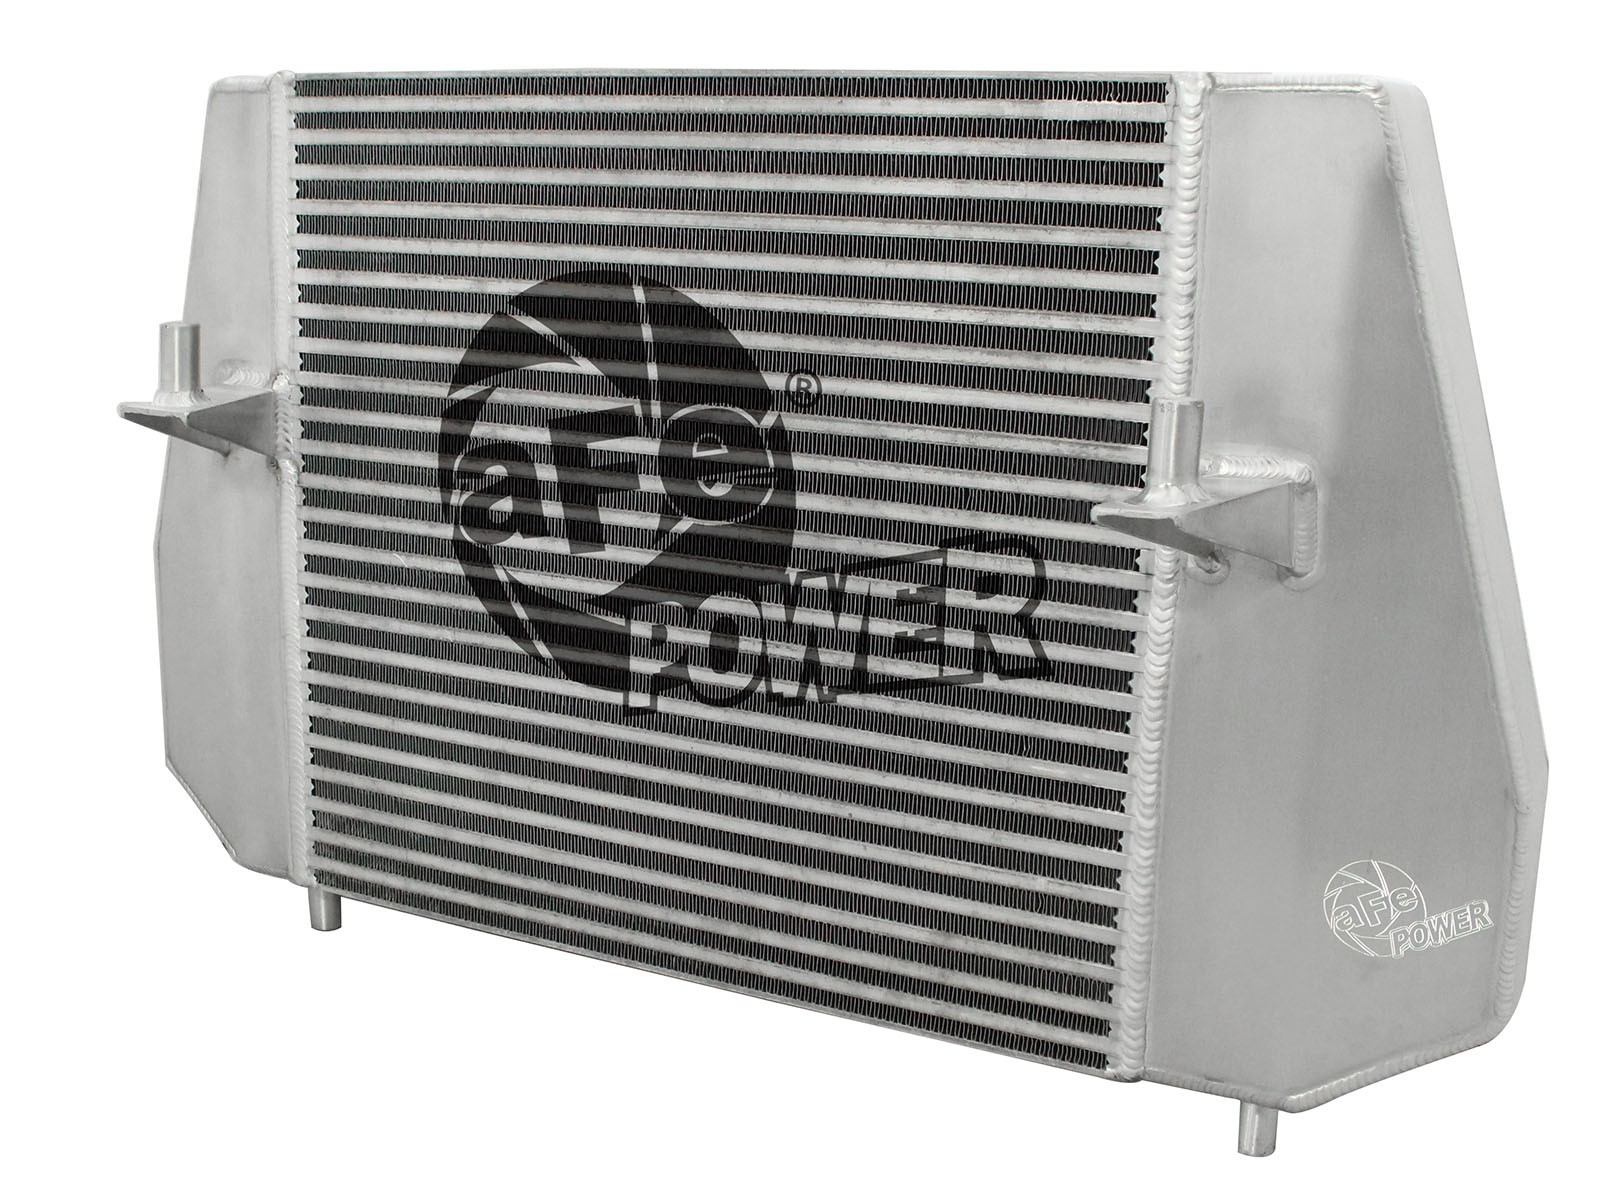 aFe POWER 46-20121-1 BladeRunner GT Series Intercooler